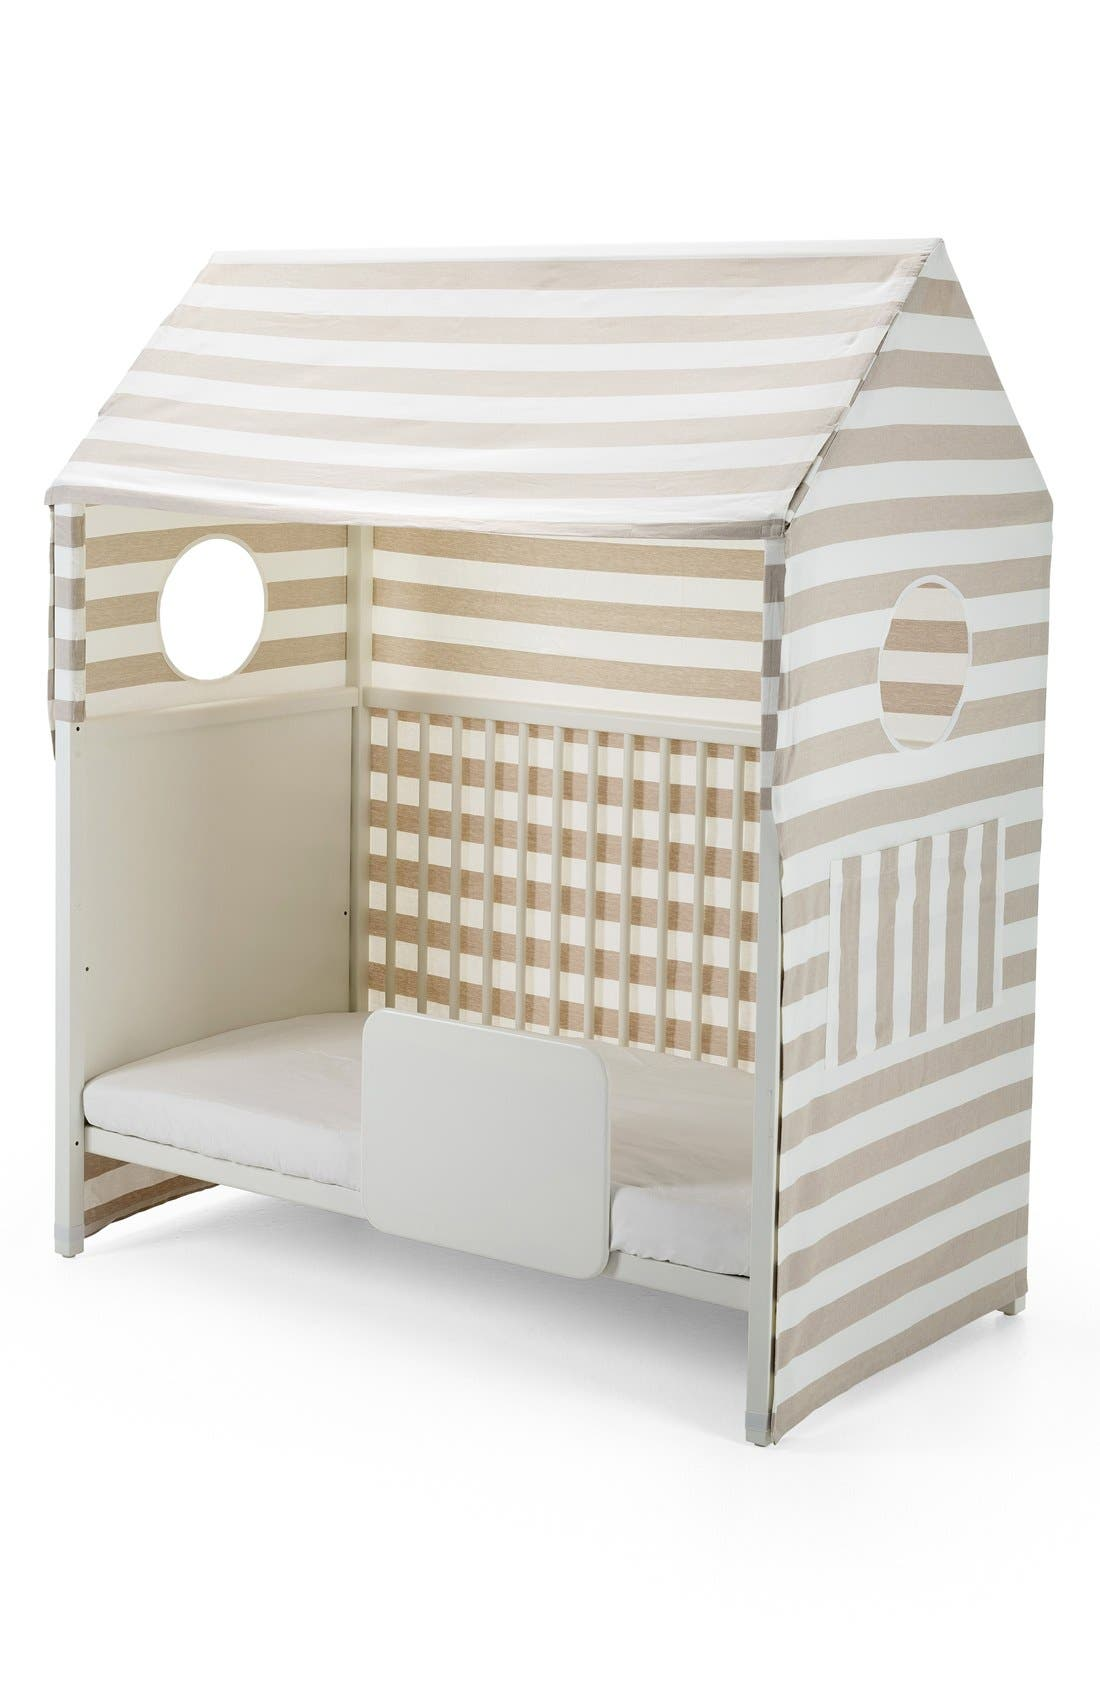 Stokke 'Home™' Toddler Bed Tent